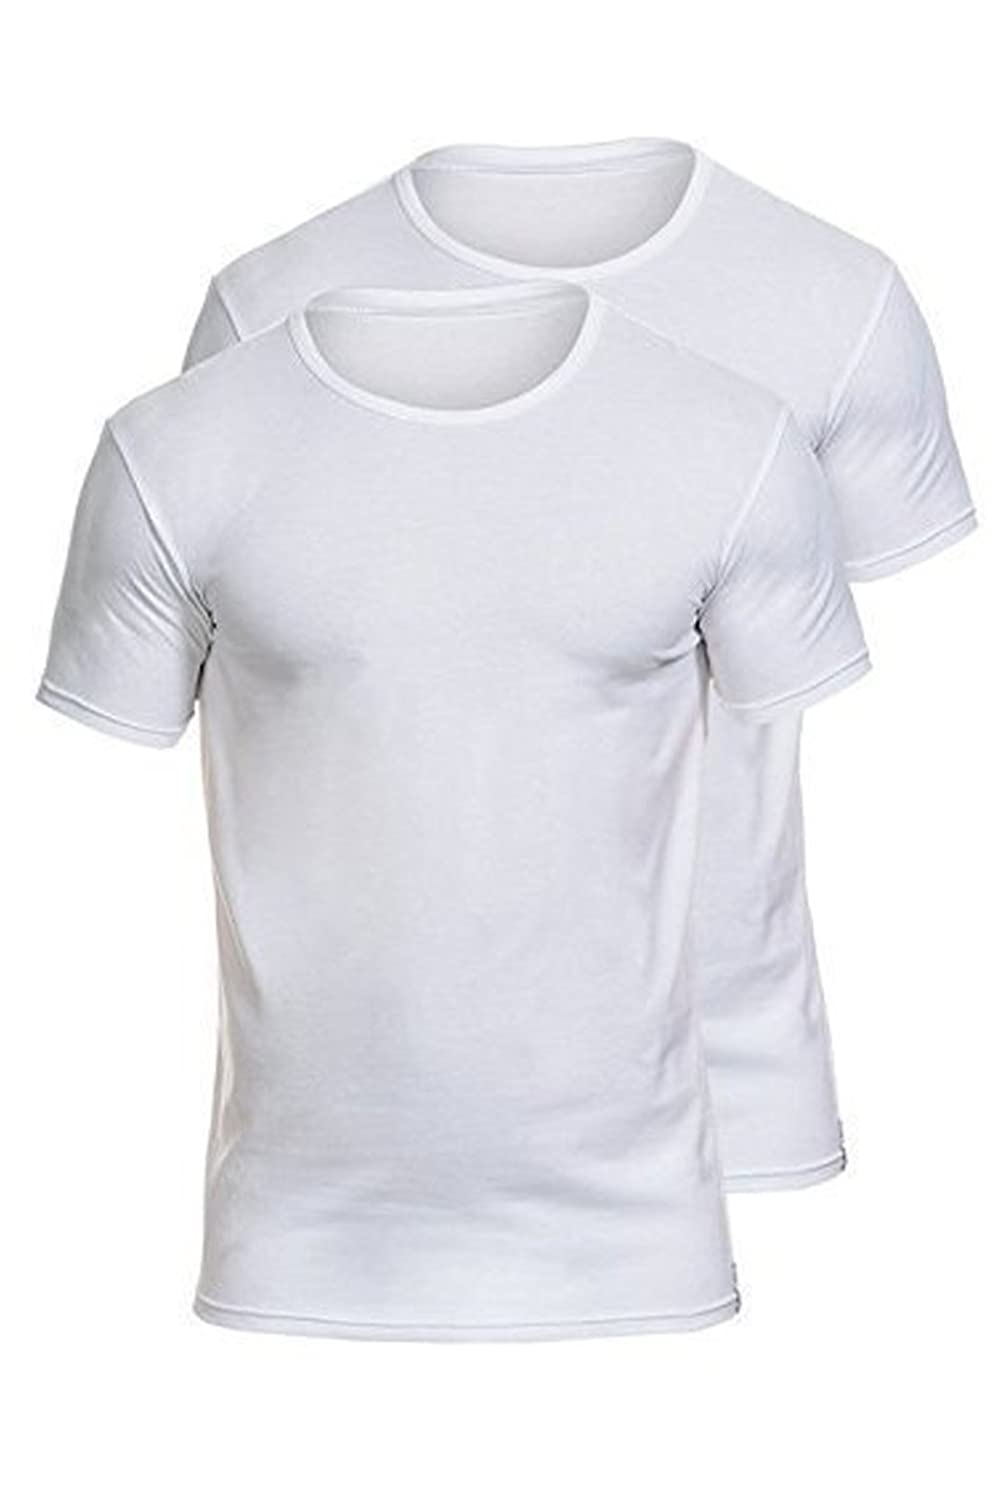 Bruno Banani T-Shirt Simply Cotton - Six Pack